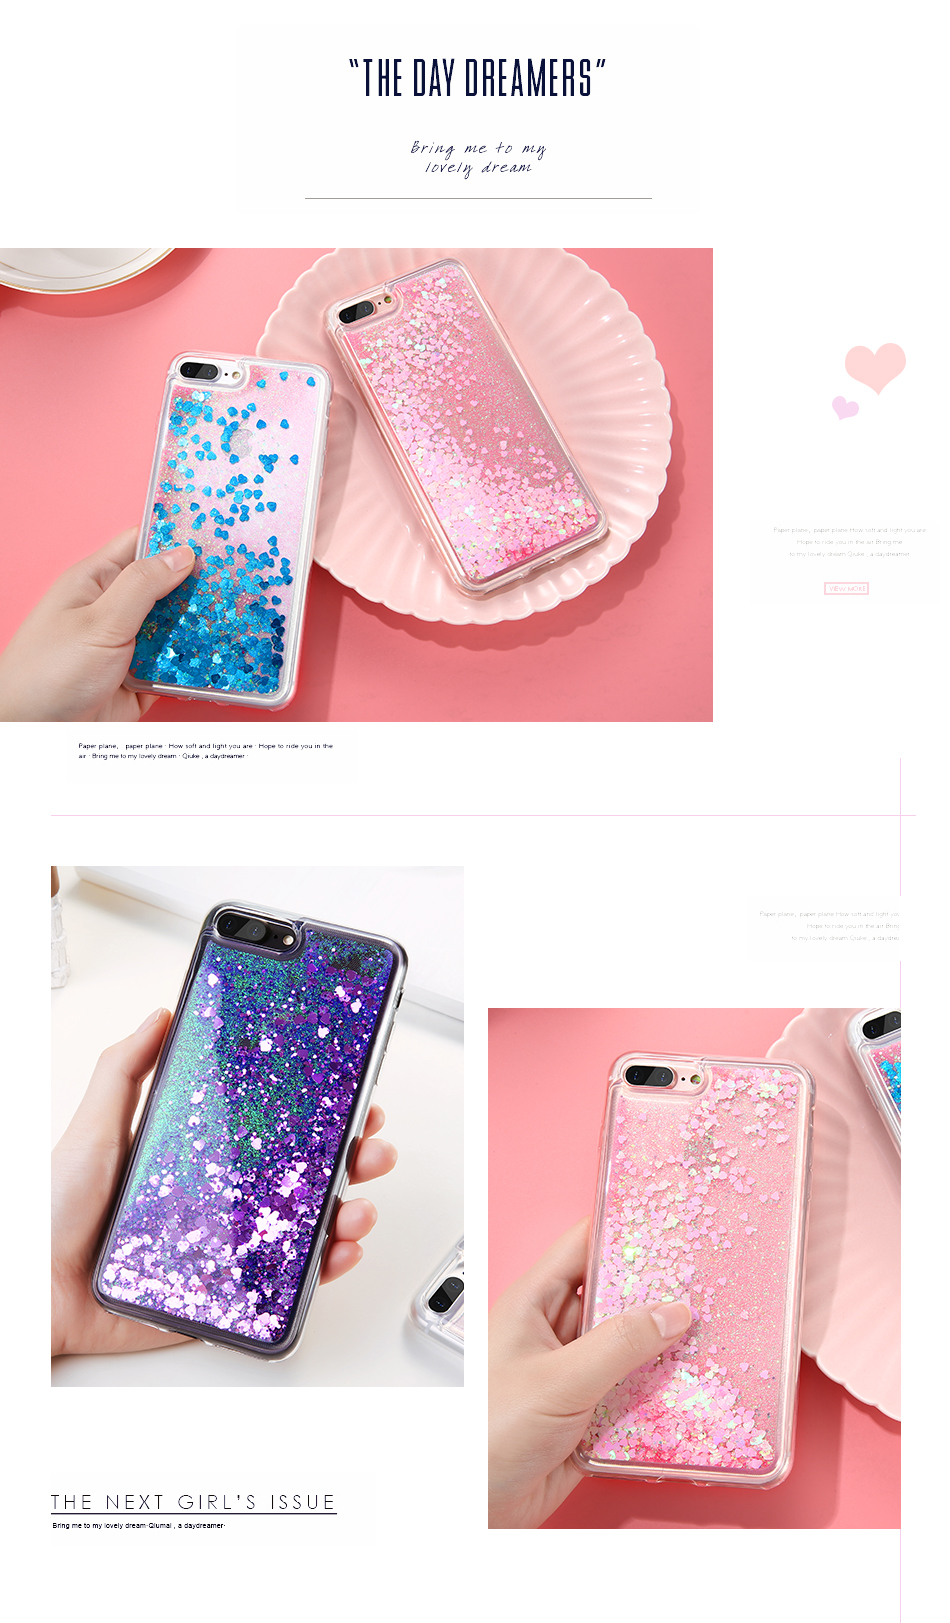 DOEES Bling Liquid Quicksand Phone Case For iPhone 7 7 Plus Shiny Sequin Soft Silicone Case Cover For iPhone 5 5S SE 6 6s Plus (4)